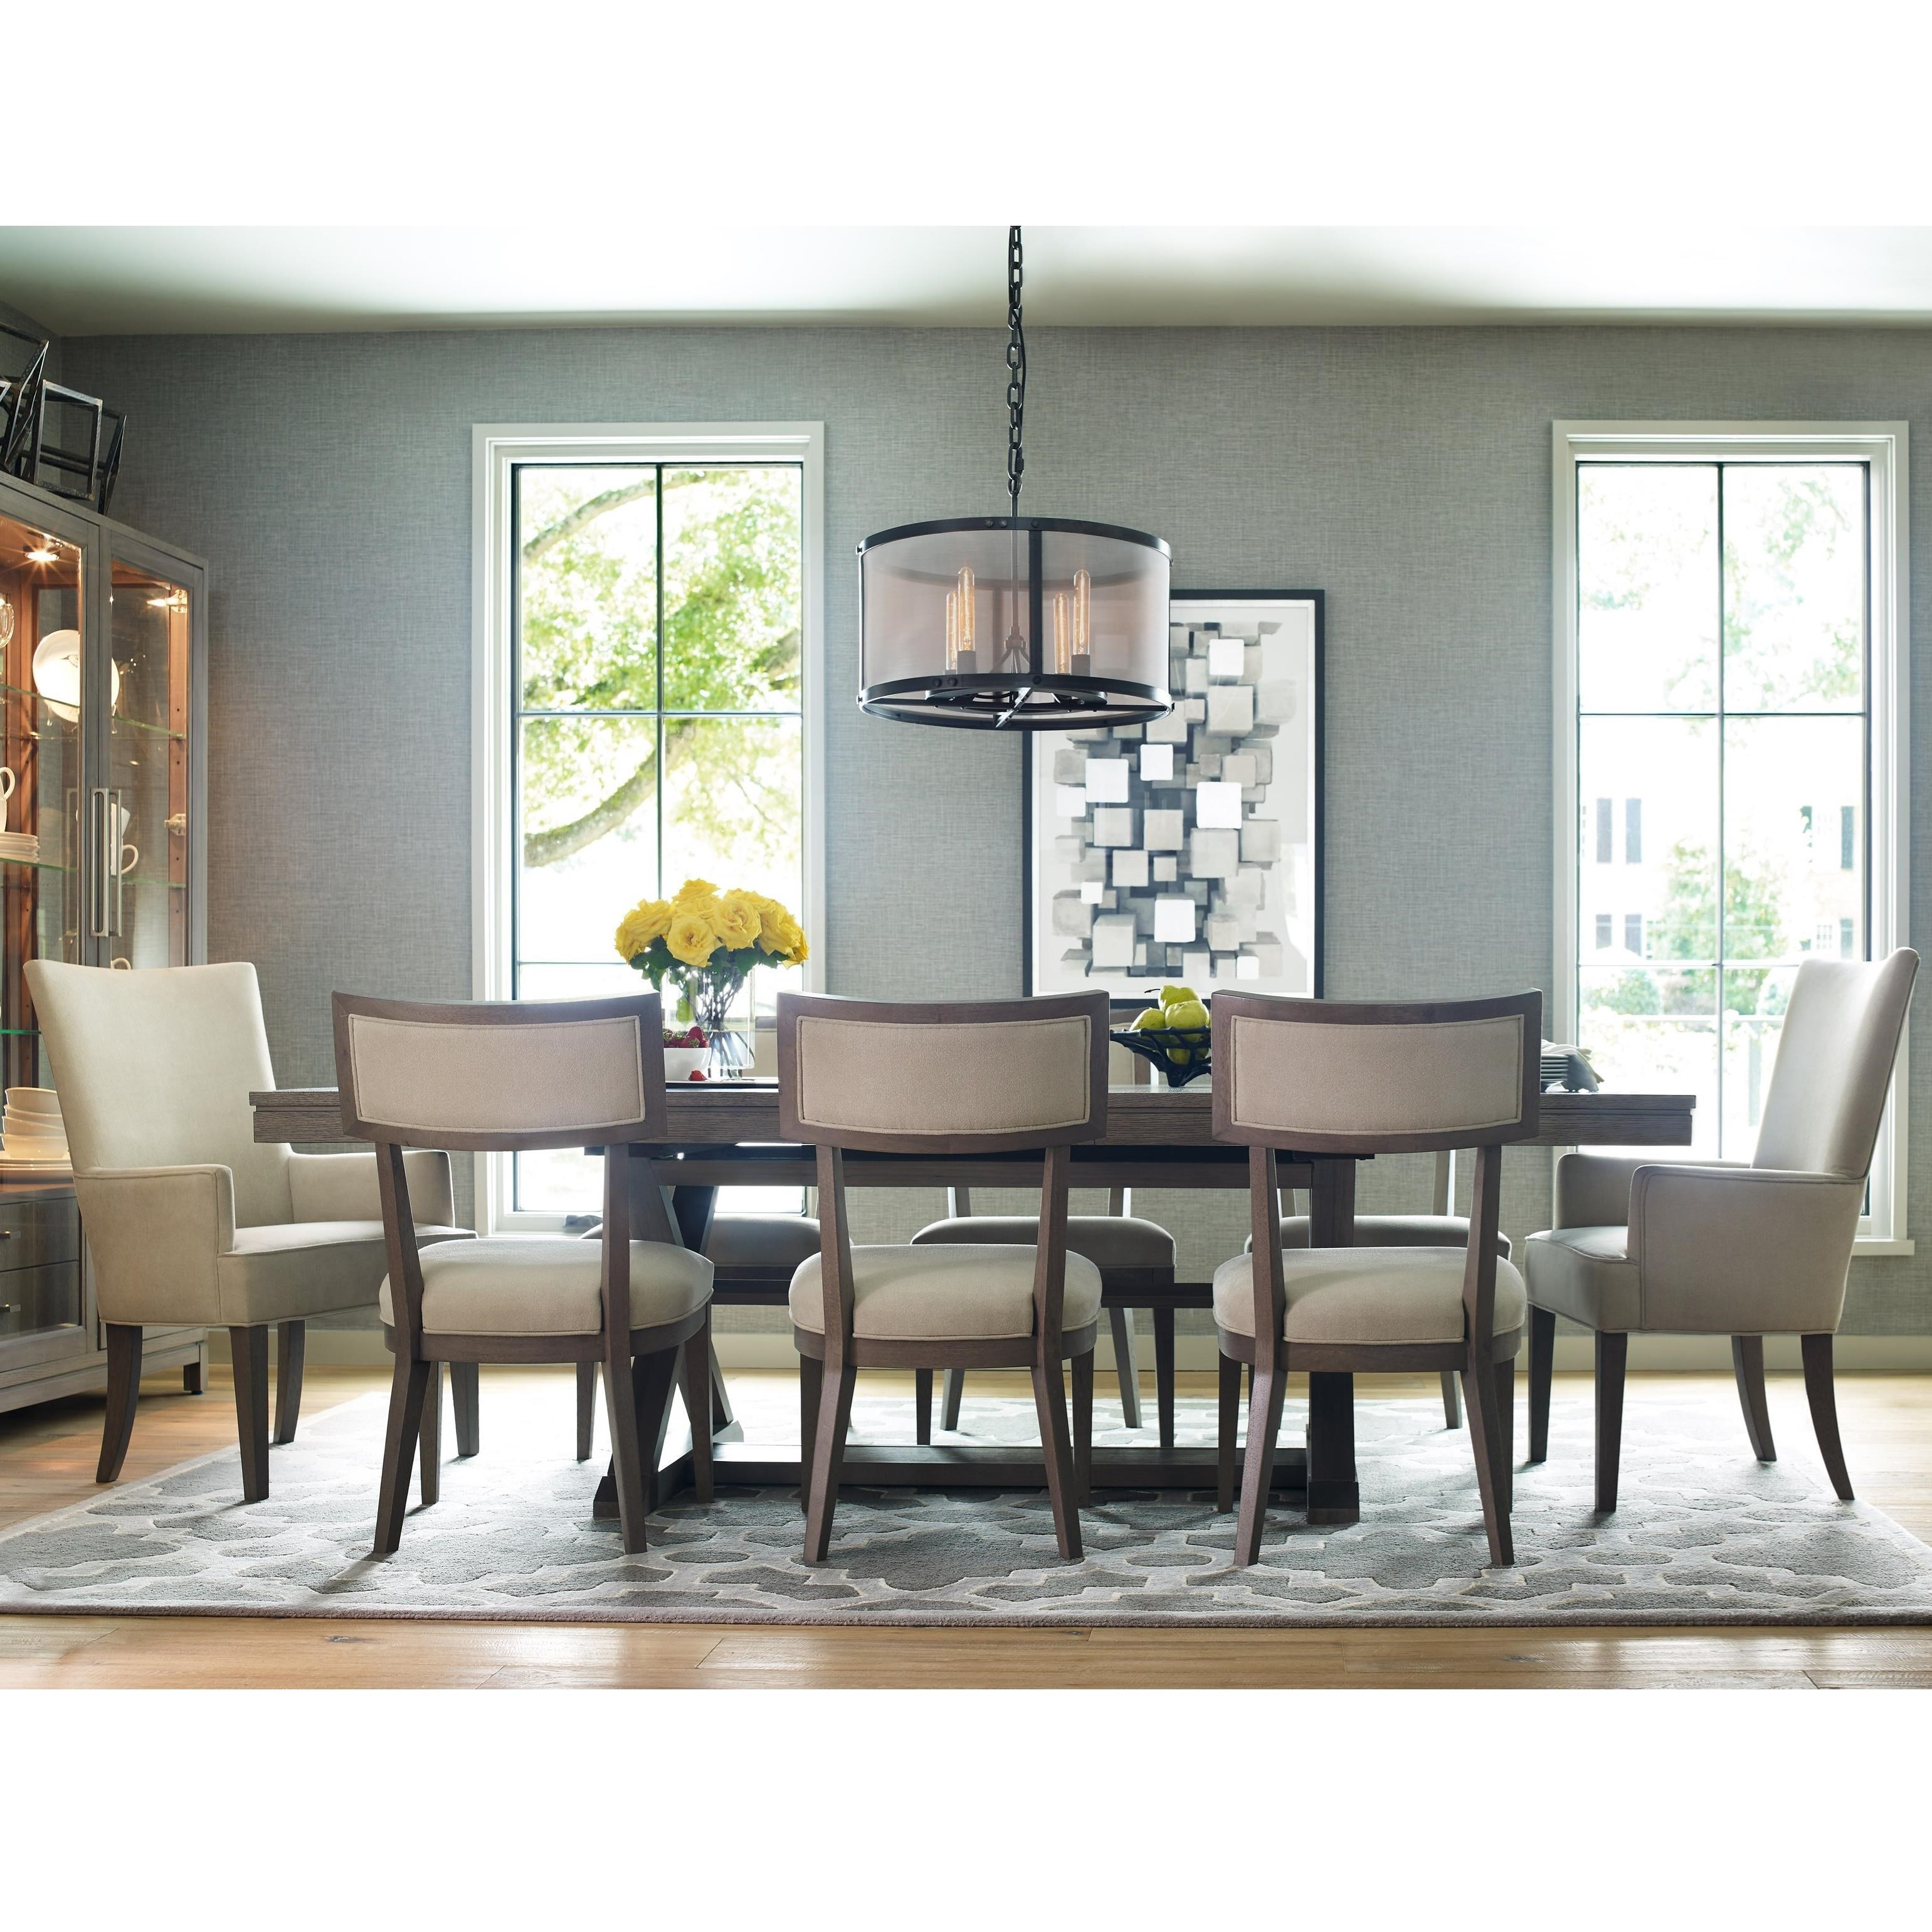 Rachael Ray Home Highline 9 Piece Dining Set With Trestle Table | Belfort  Furniture | Dining 7 (or More) Piece Sets